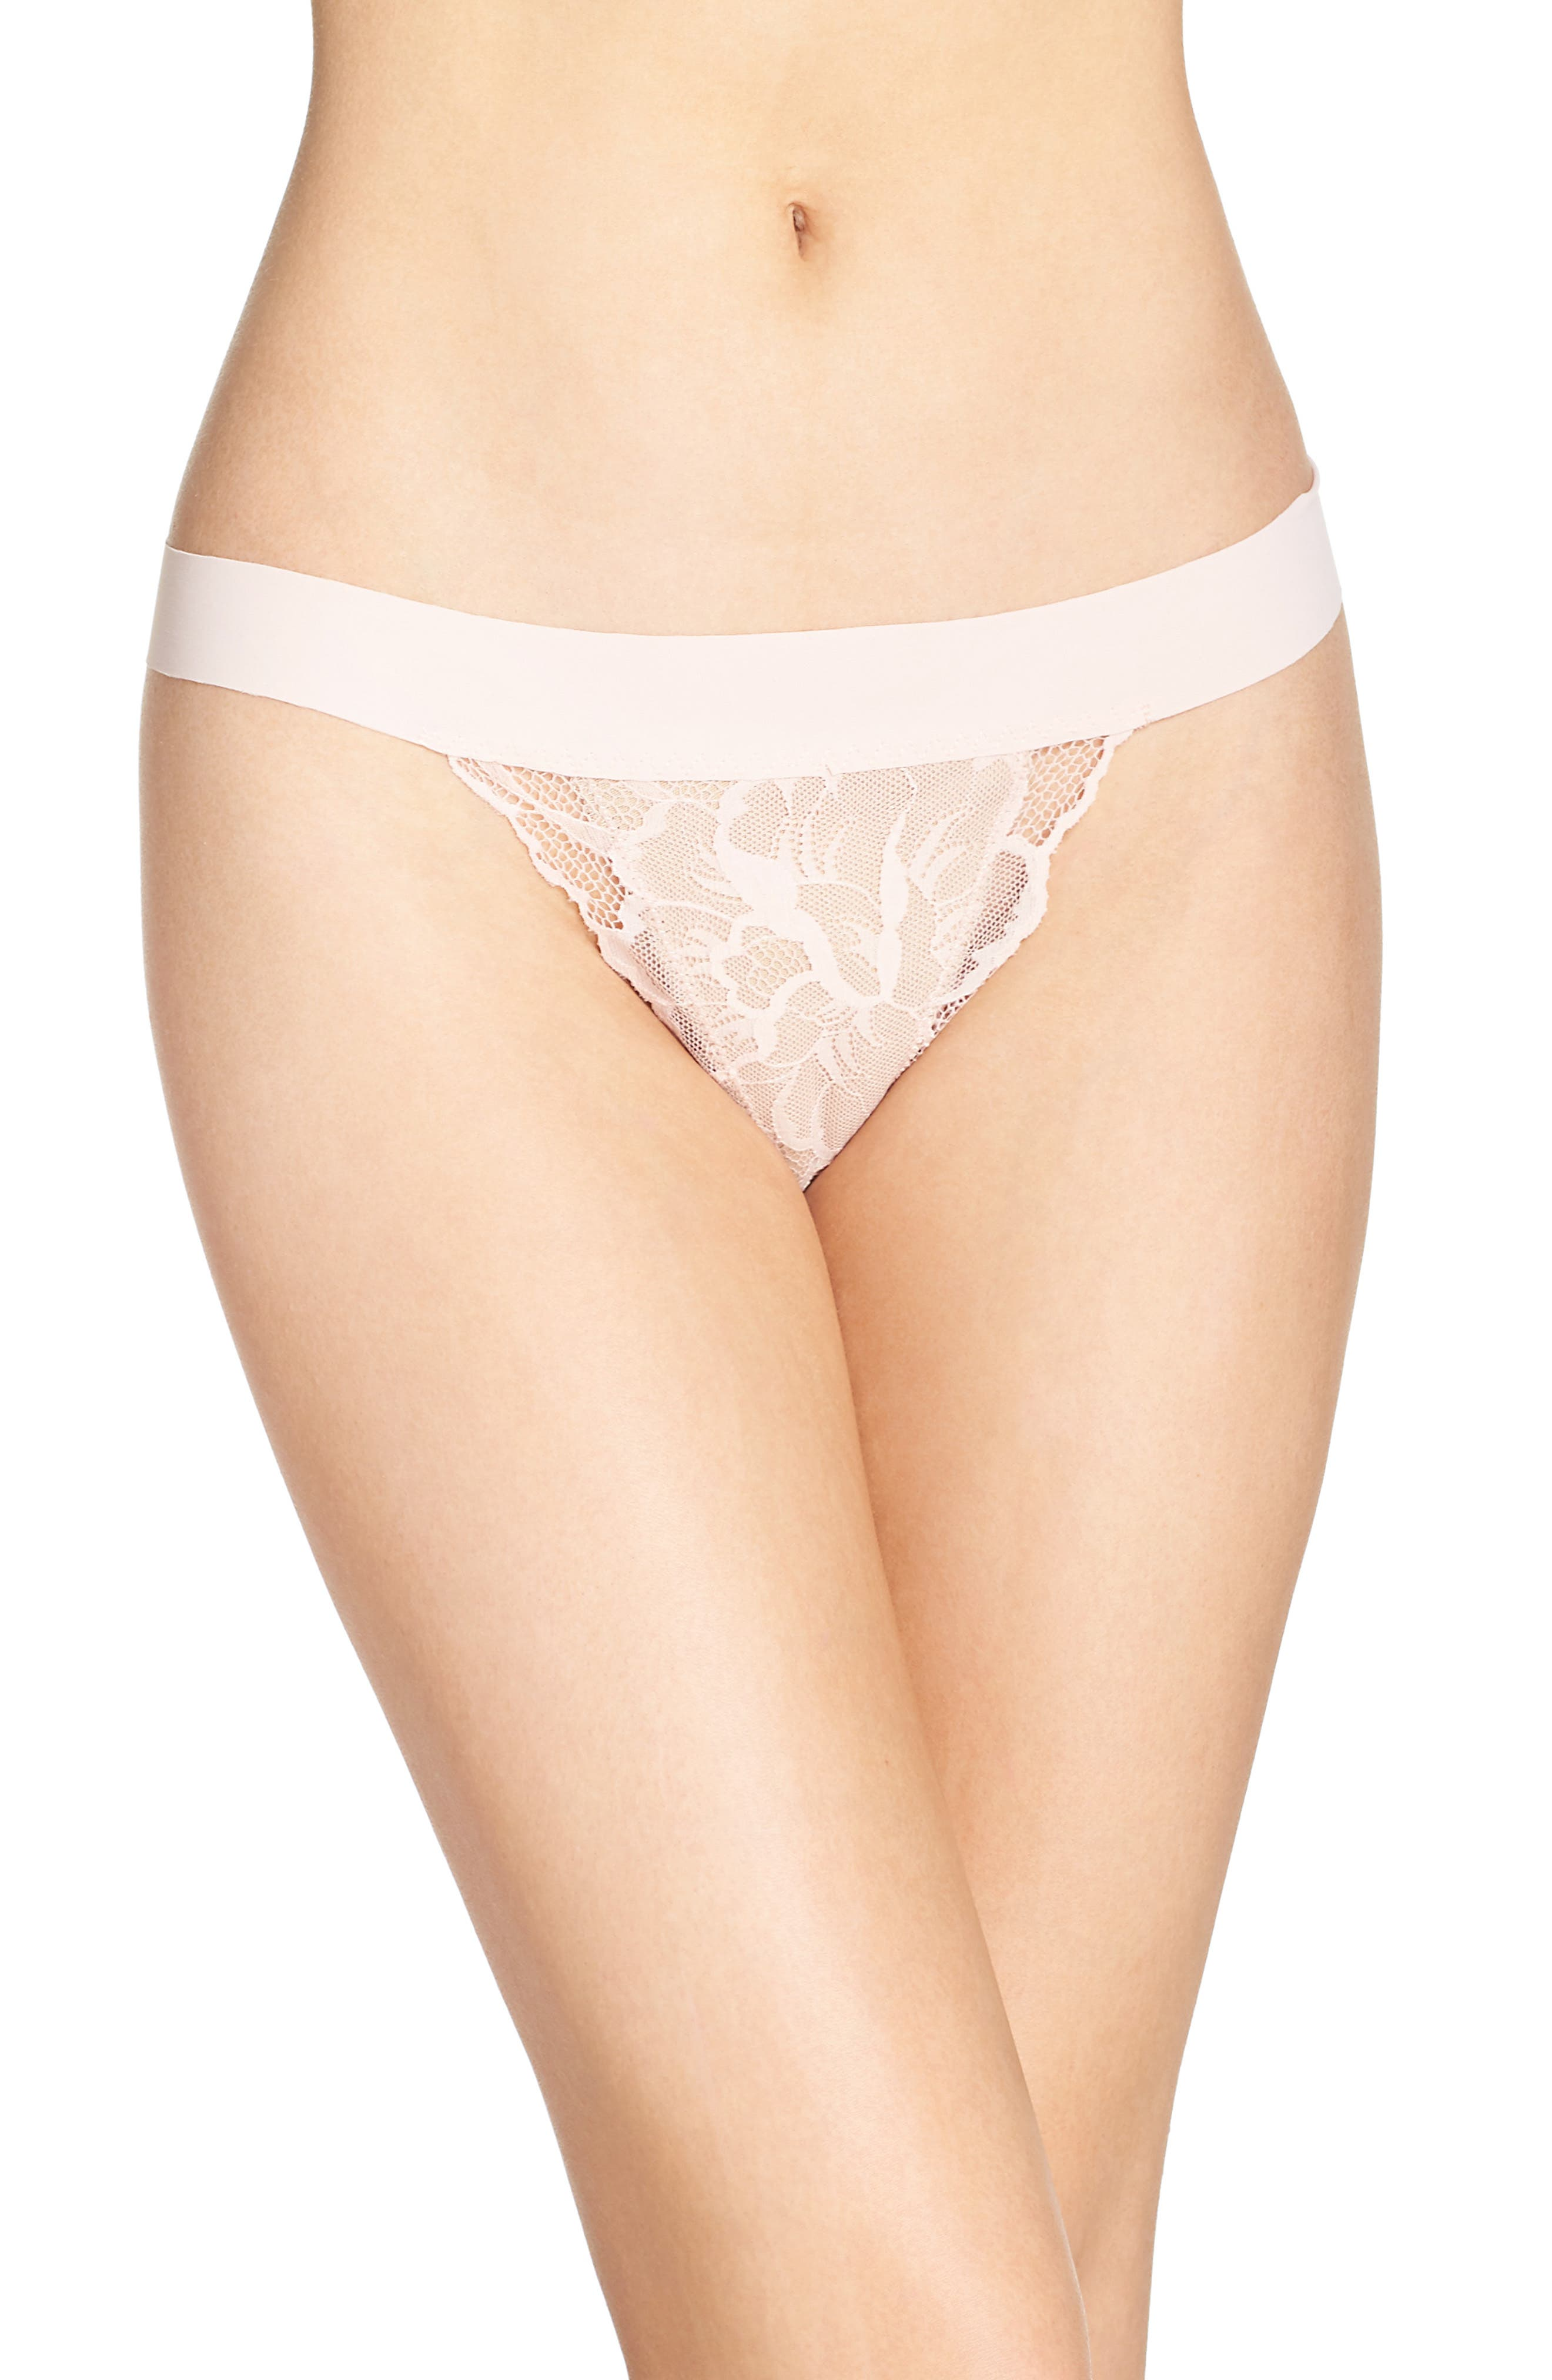 'Double Take' Lace G-String Thong,                             Main thumbnail 7, color,